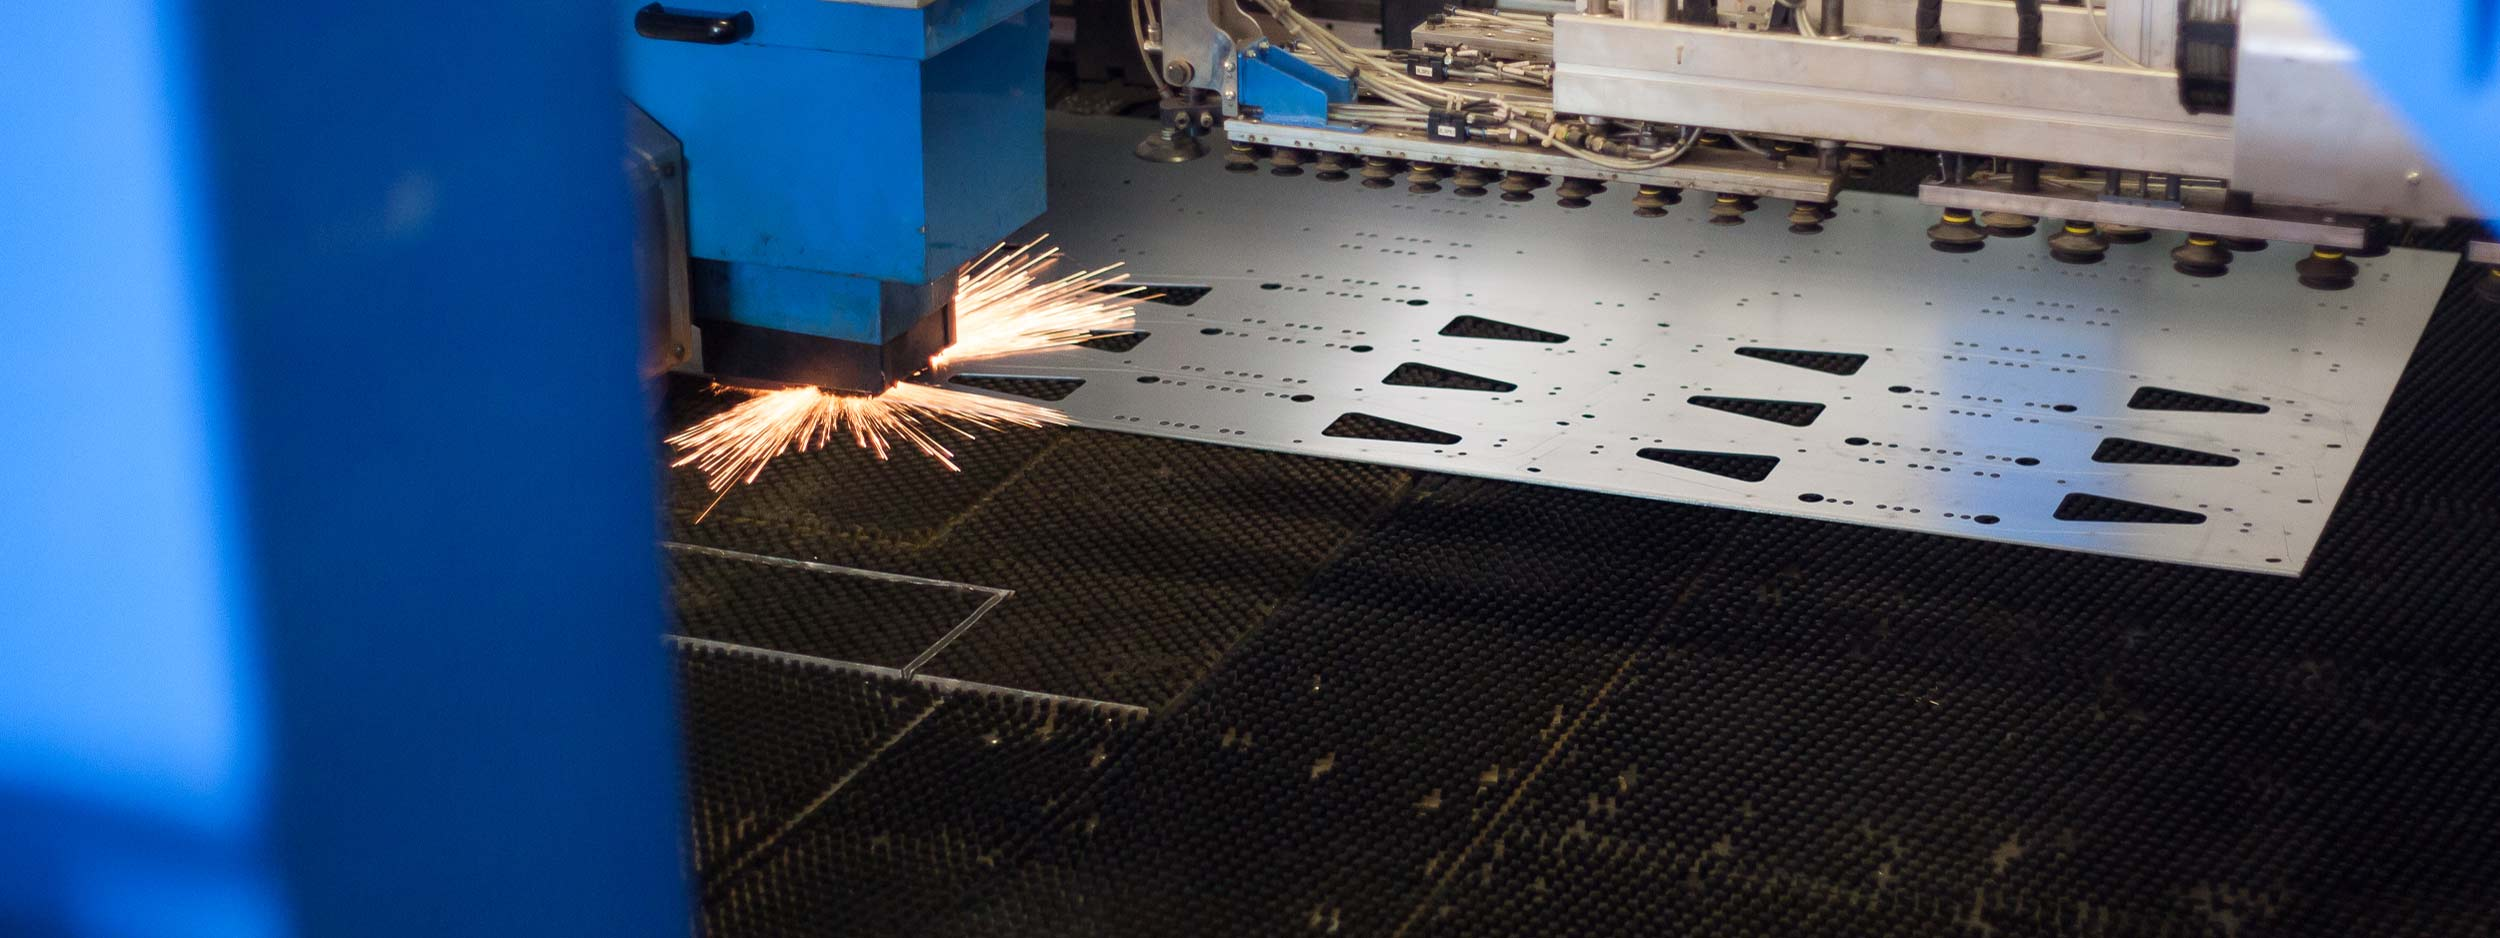 LASER CUTTING, PUNCHING, BENDING, WELDING, MACHINING, FINISHING, ASSEMBLING